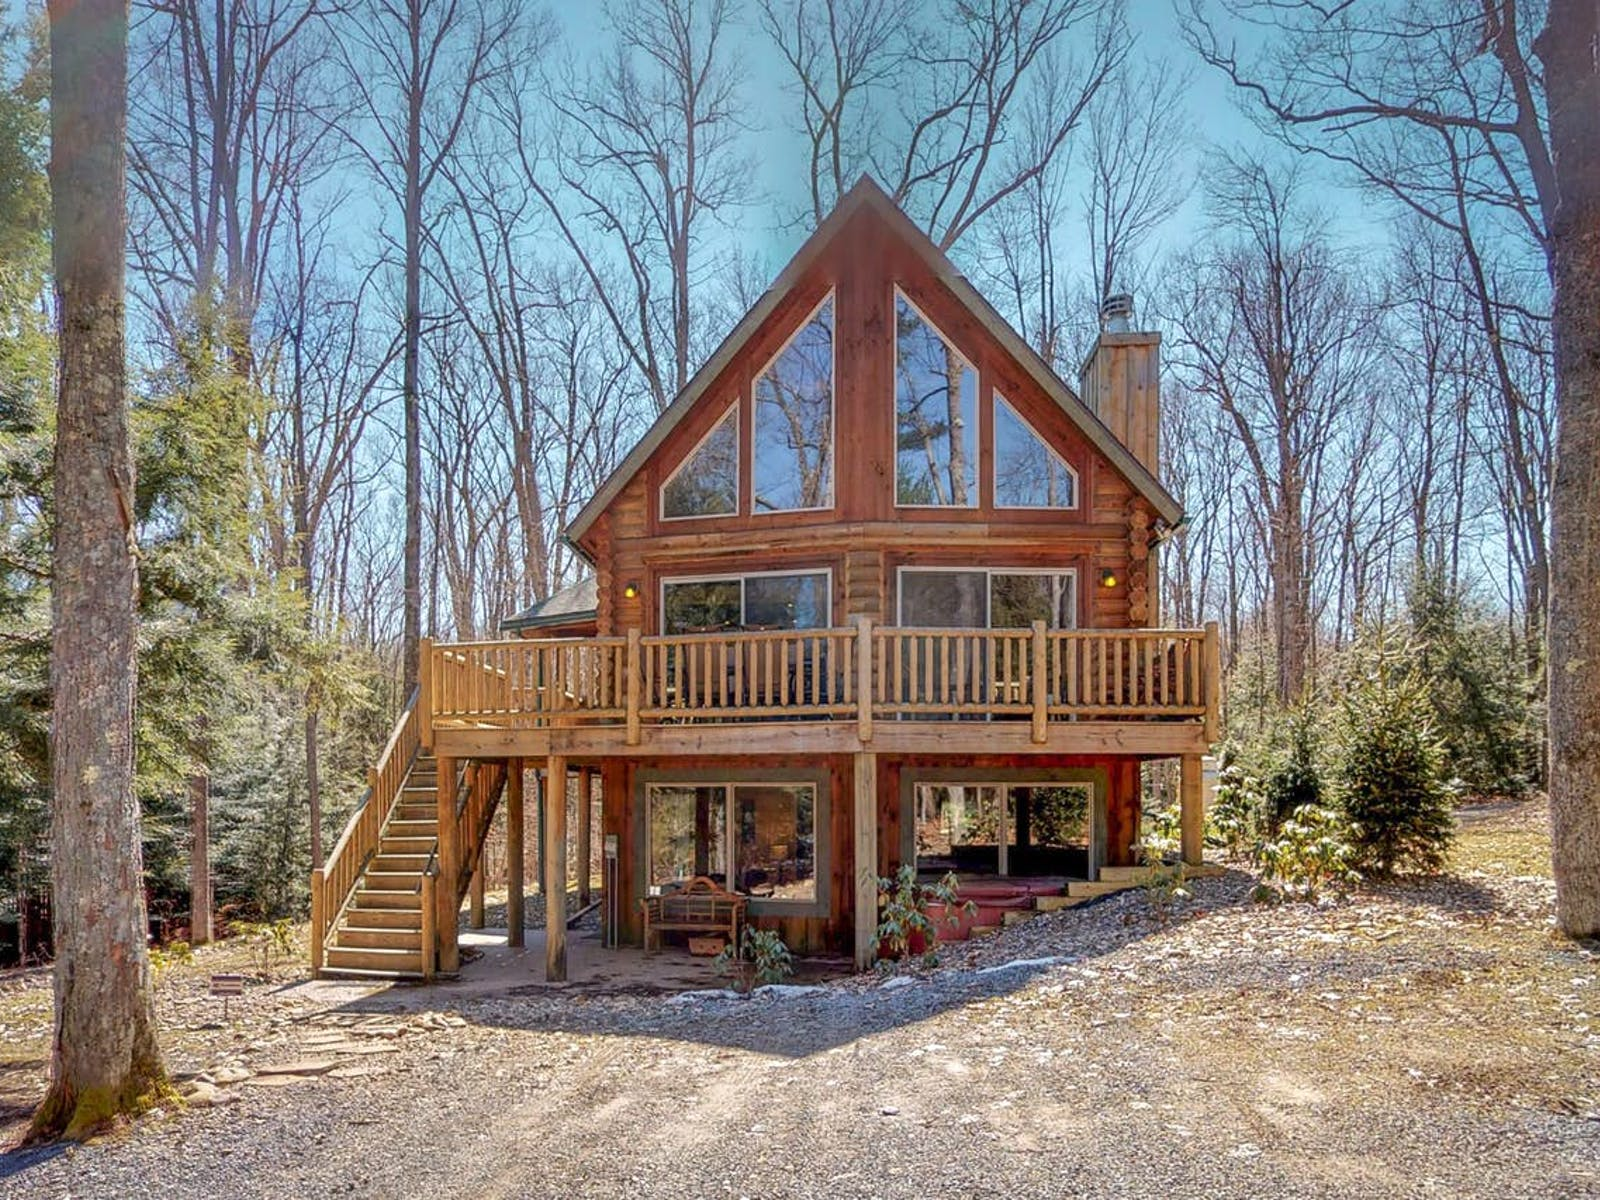 Vacation rental in Oakland, MD surrounded by forest